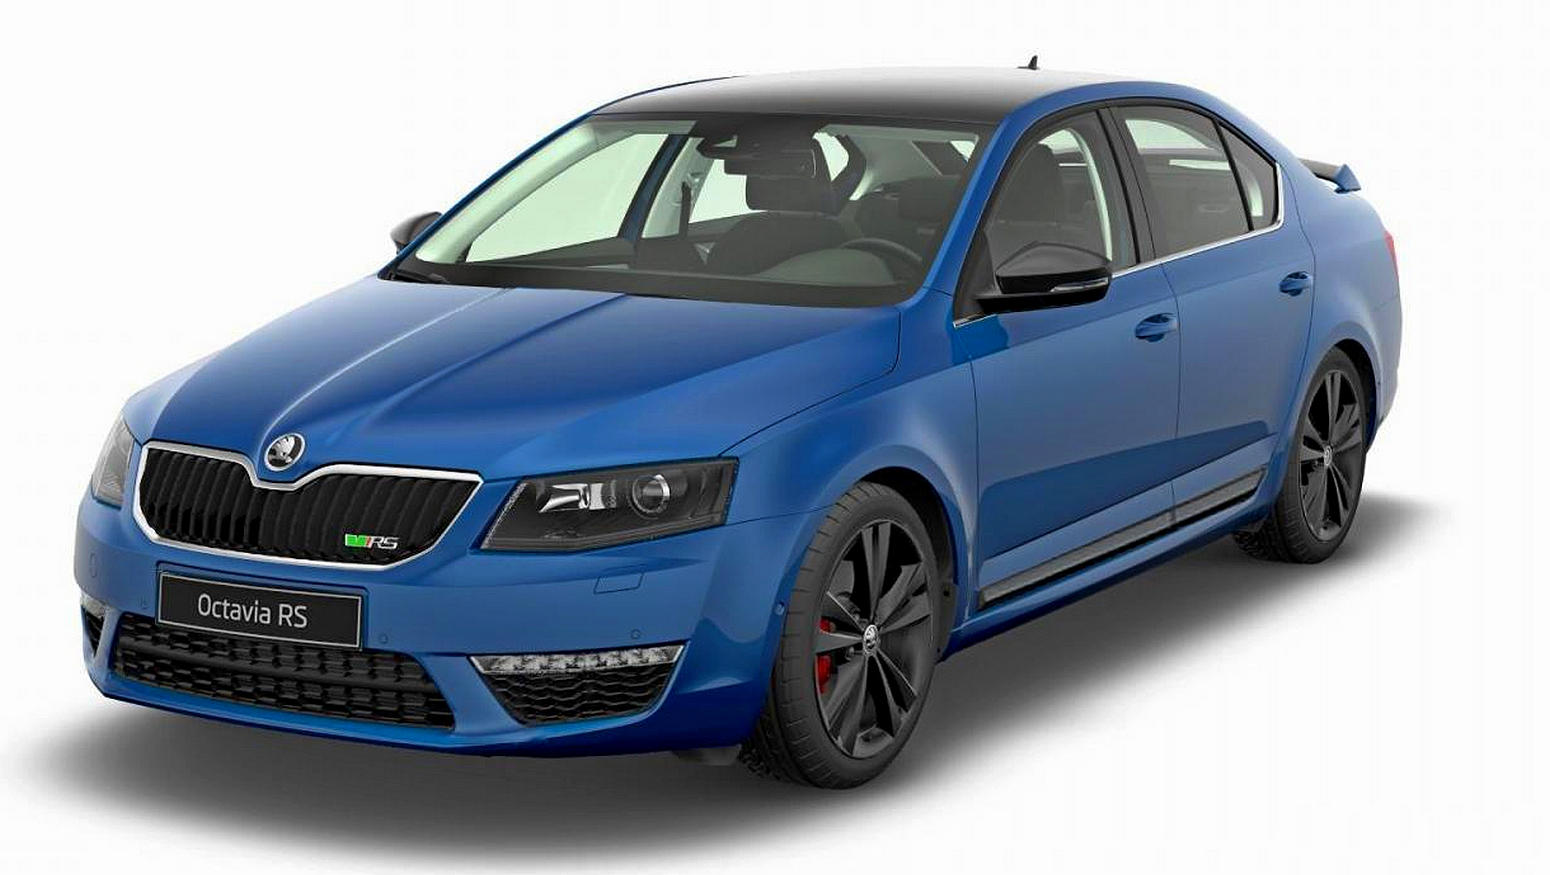 skoda octavia rs skoda. Black Bedroom Furniture Sets. Home Design Ideas